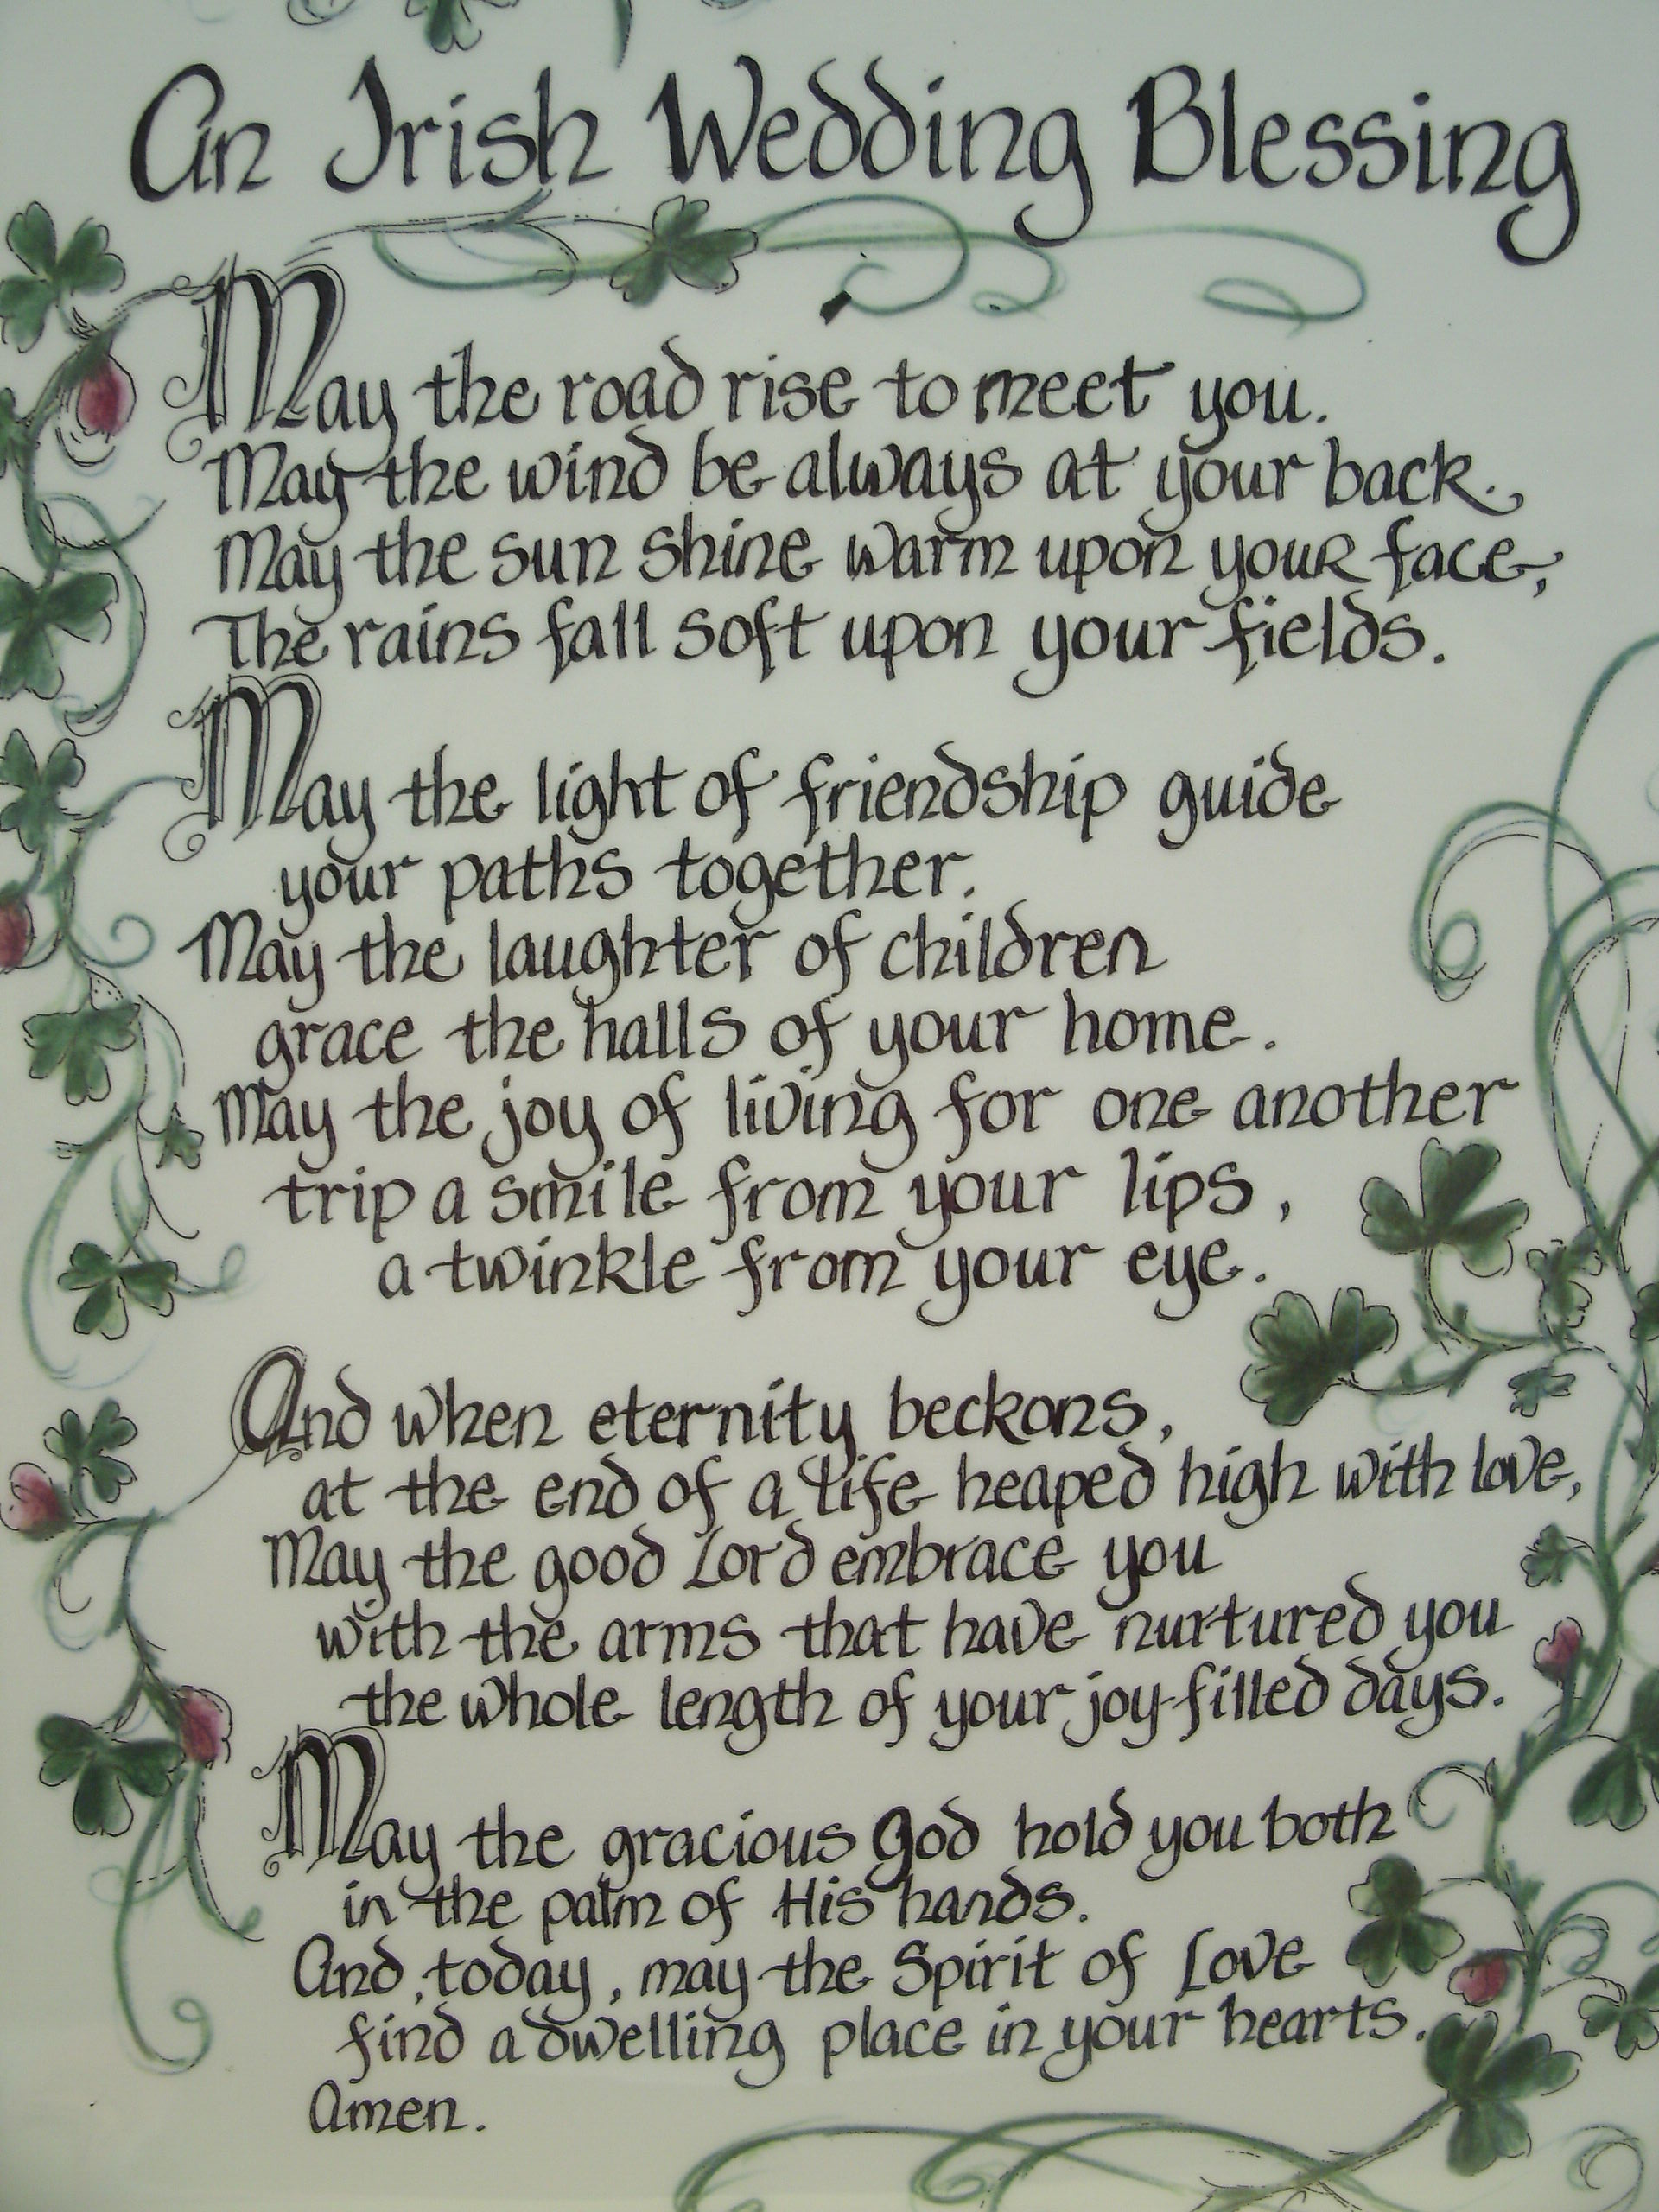 Irish Wedding Blessing I Need An Husband For My